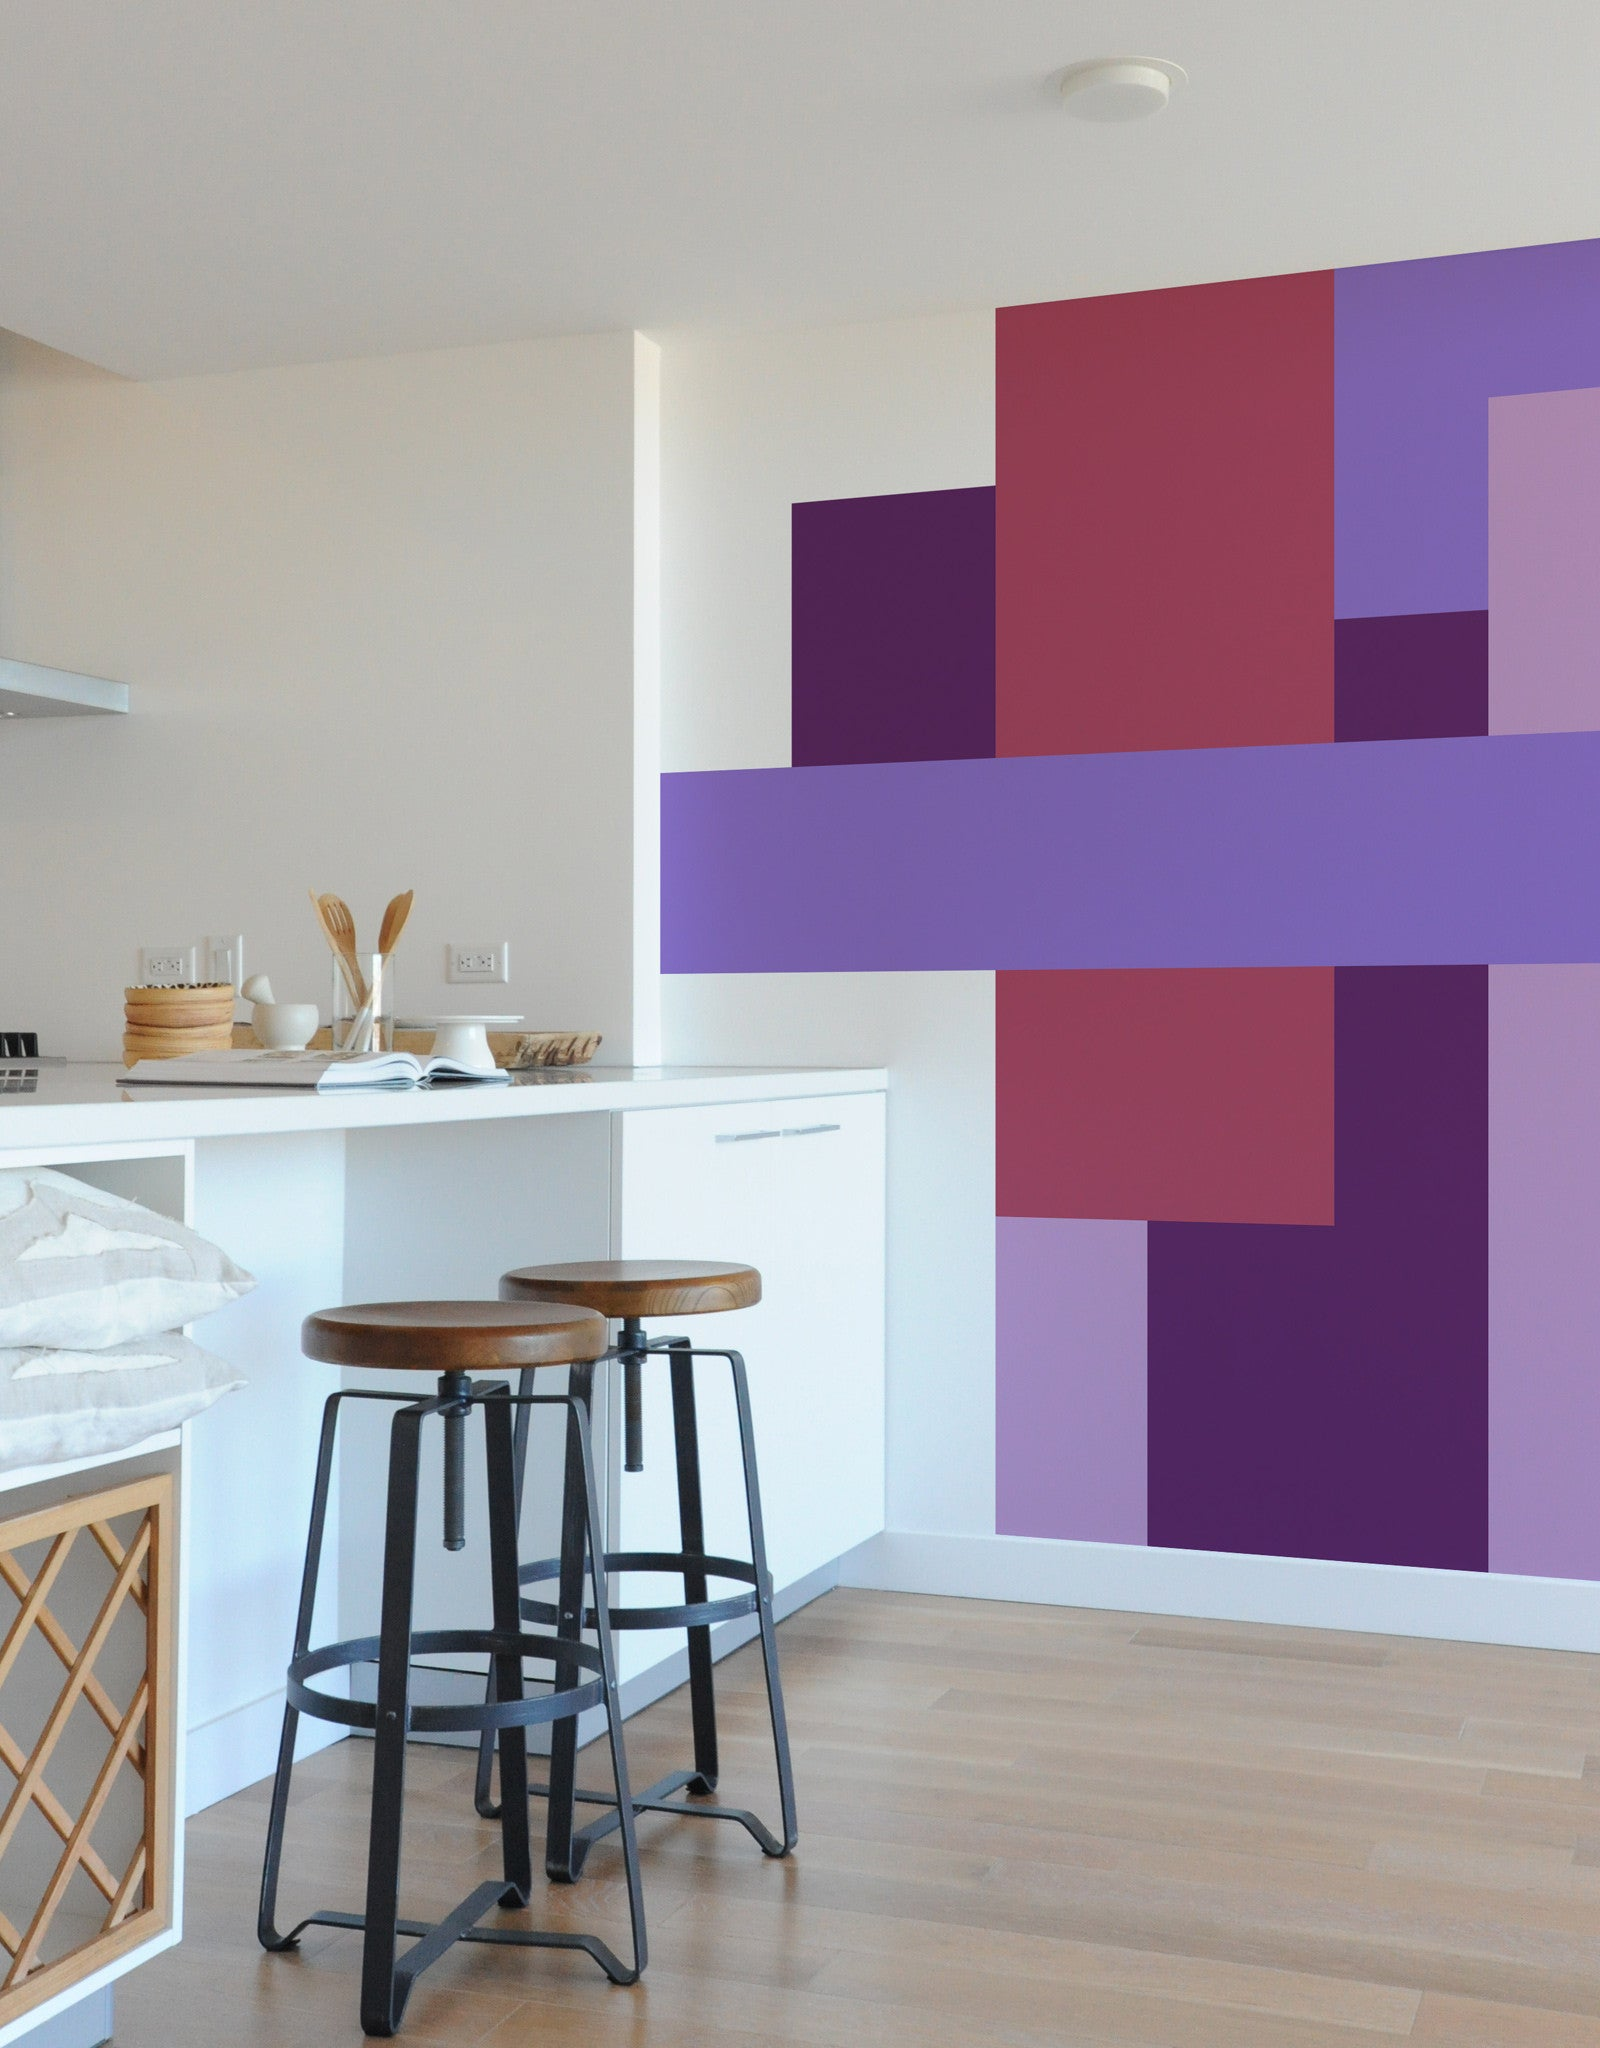 Color blocking art self adhesive wall decals blik parallel color block parallel amipublicfo Image collections